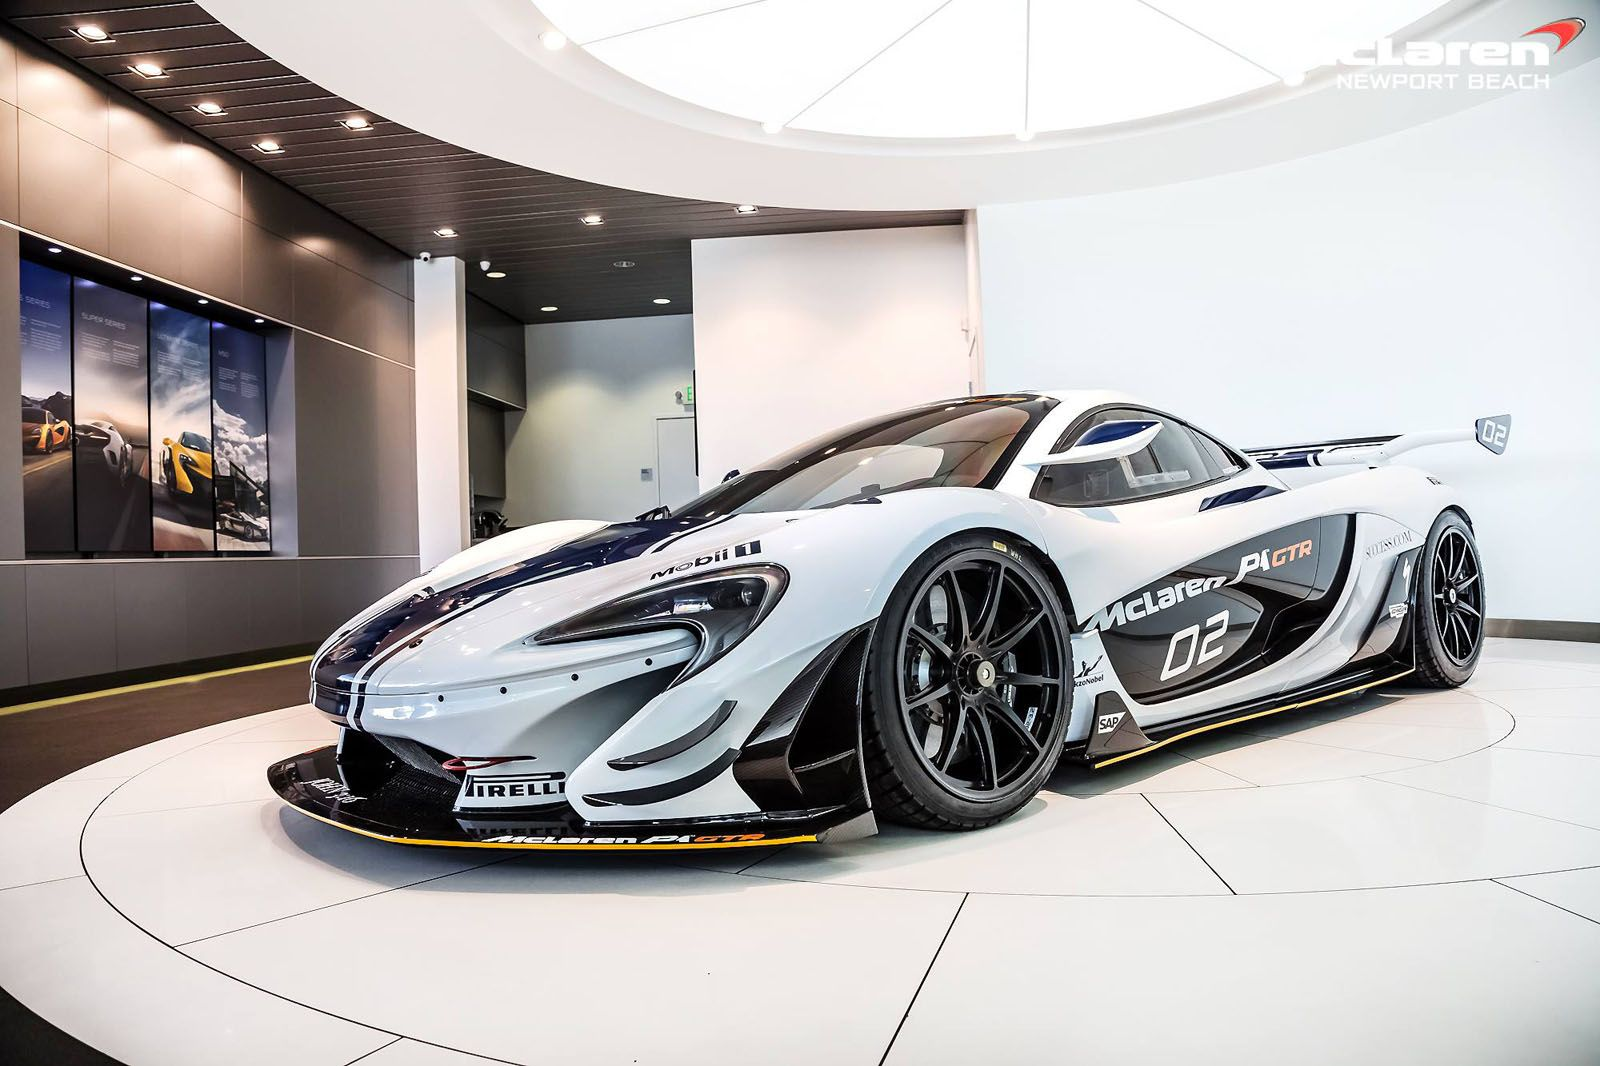 Mclaren P1 Gtr Listed For Sale In Southern California Carscoops Blue Mclaren P1 Mclaren P1 Mclaren Cars